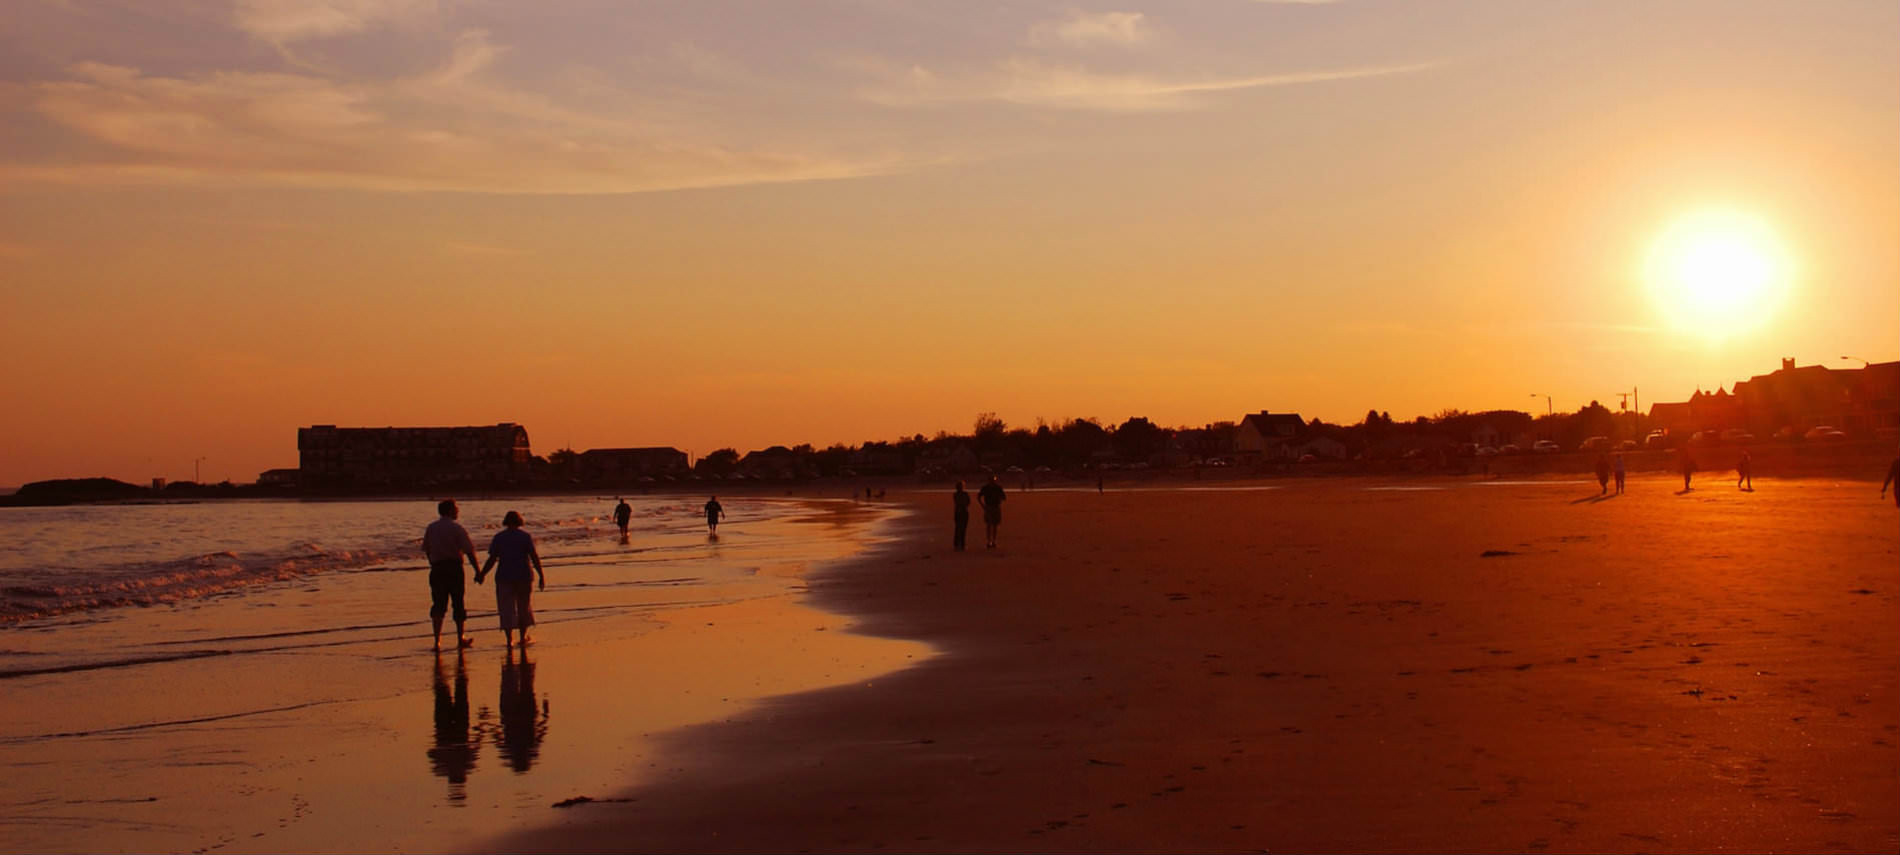 People walk along the shore, on the sand and in the shoreline, as the sun sets in a red blaze.